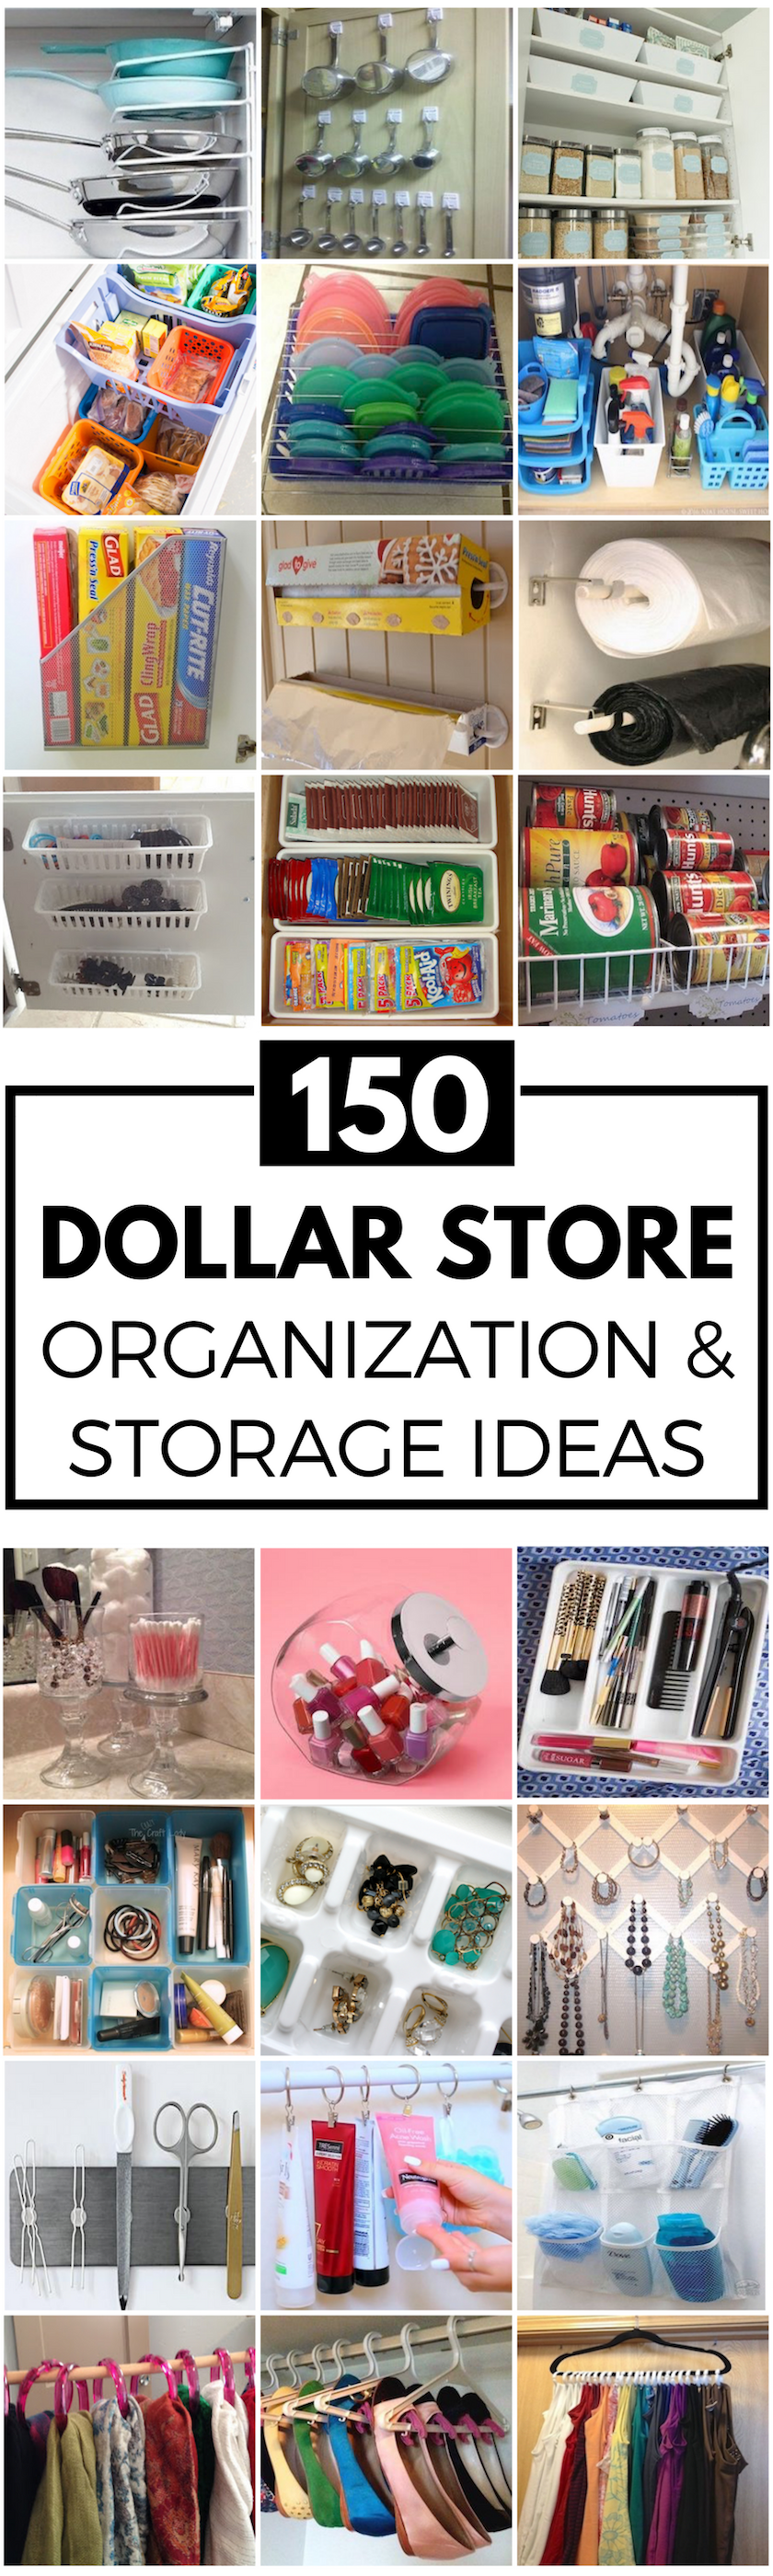 150 Diy Dollar Store Organization And Storage Ideas